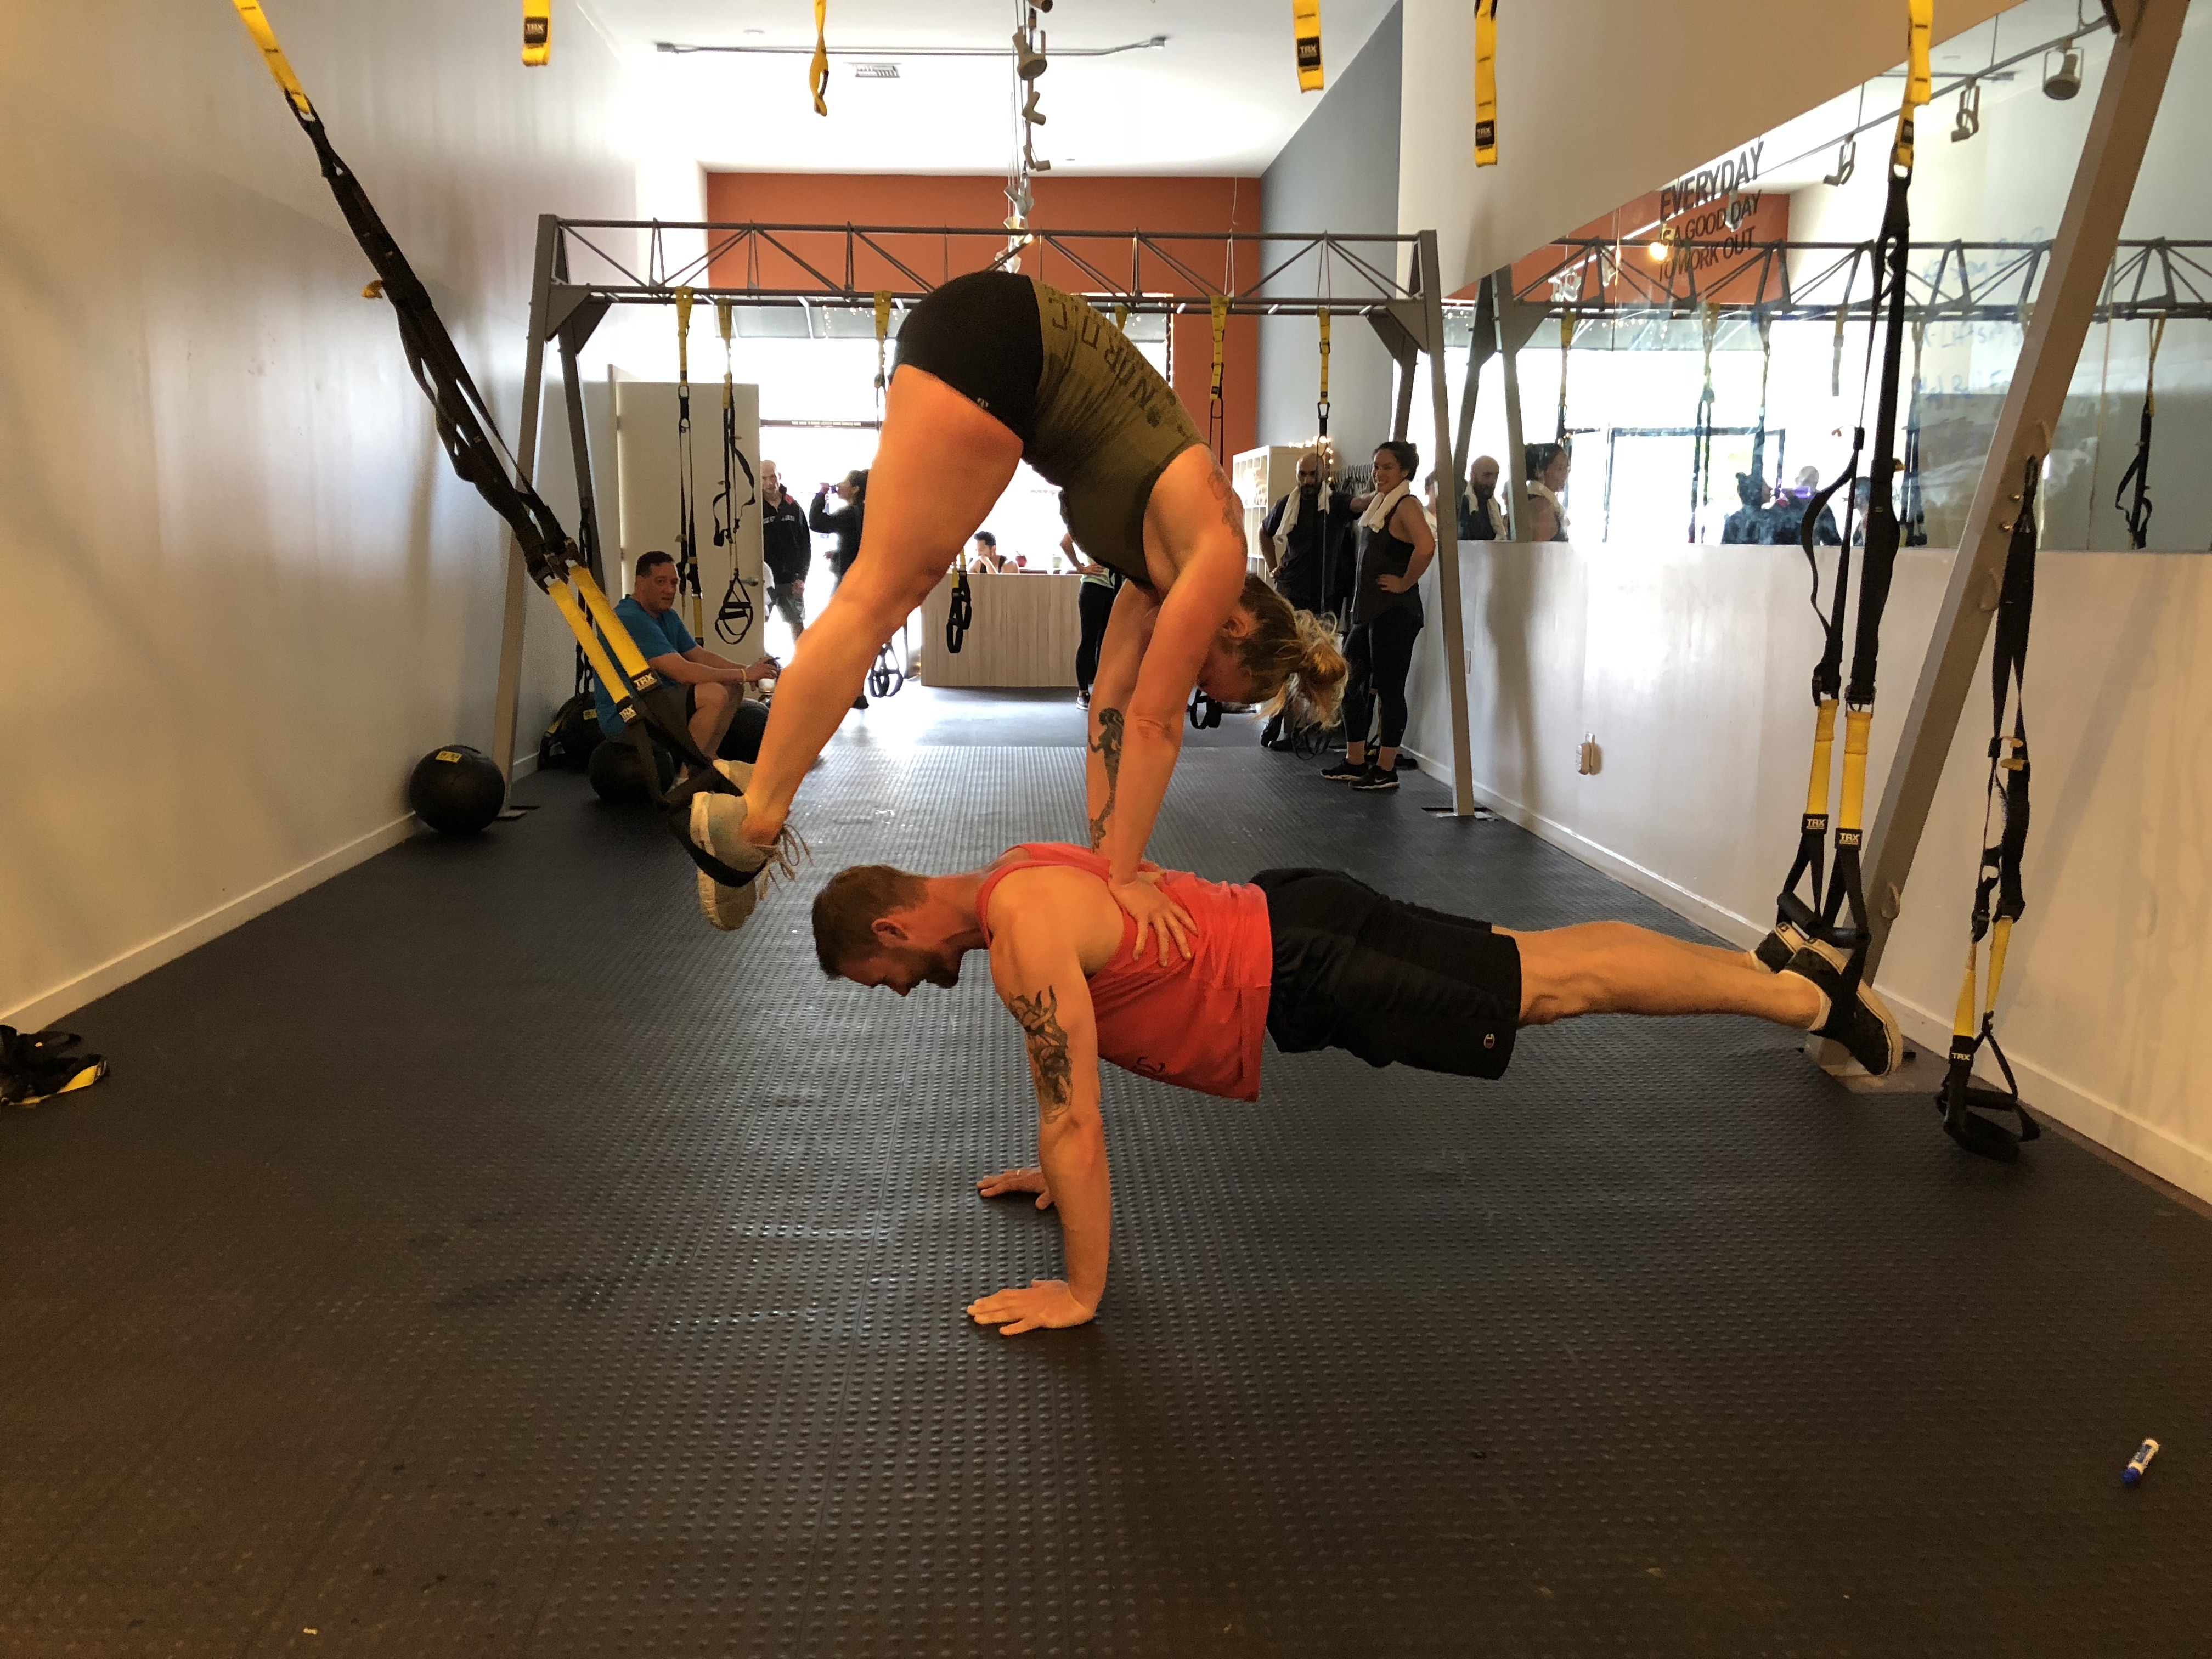 One trainers performing a TRX Atomic Pushup while her hands on a man's back as he performs a TRX Plank